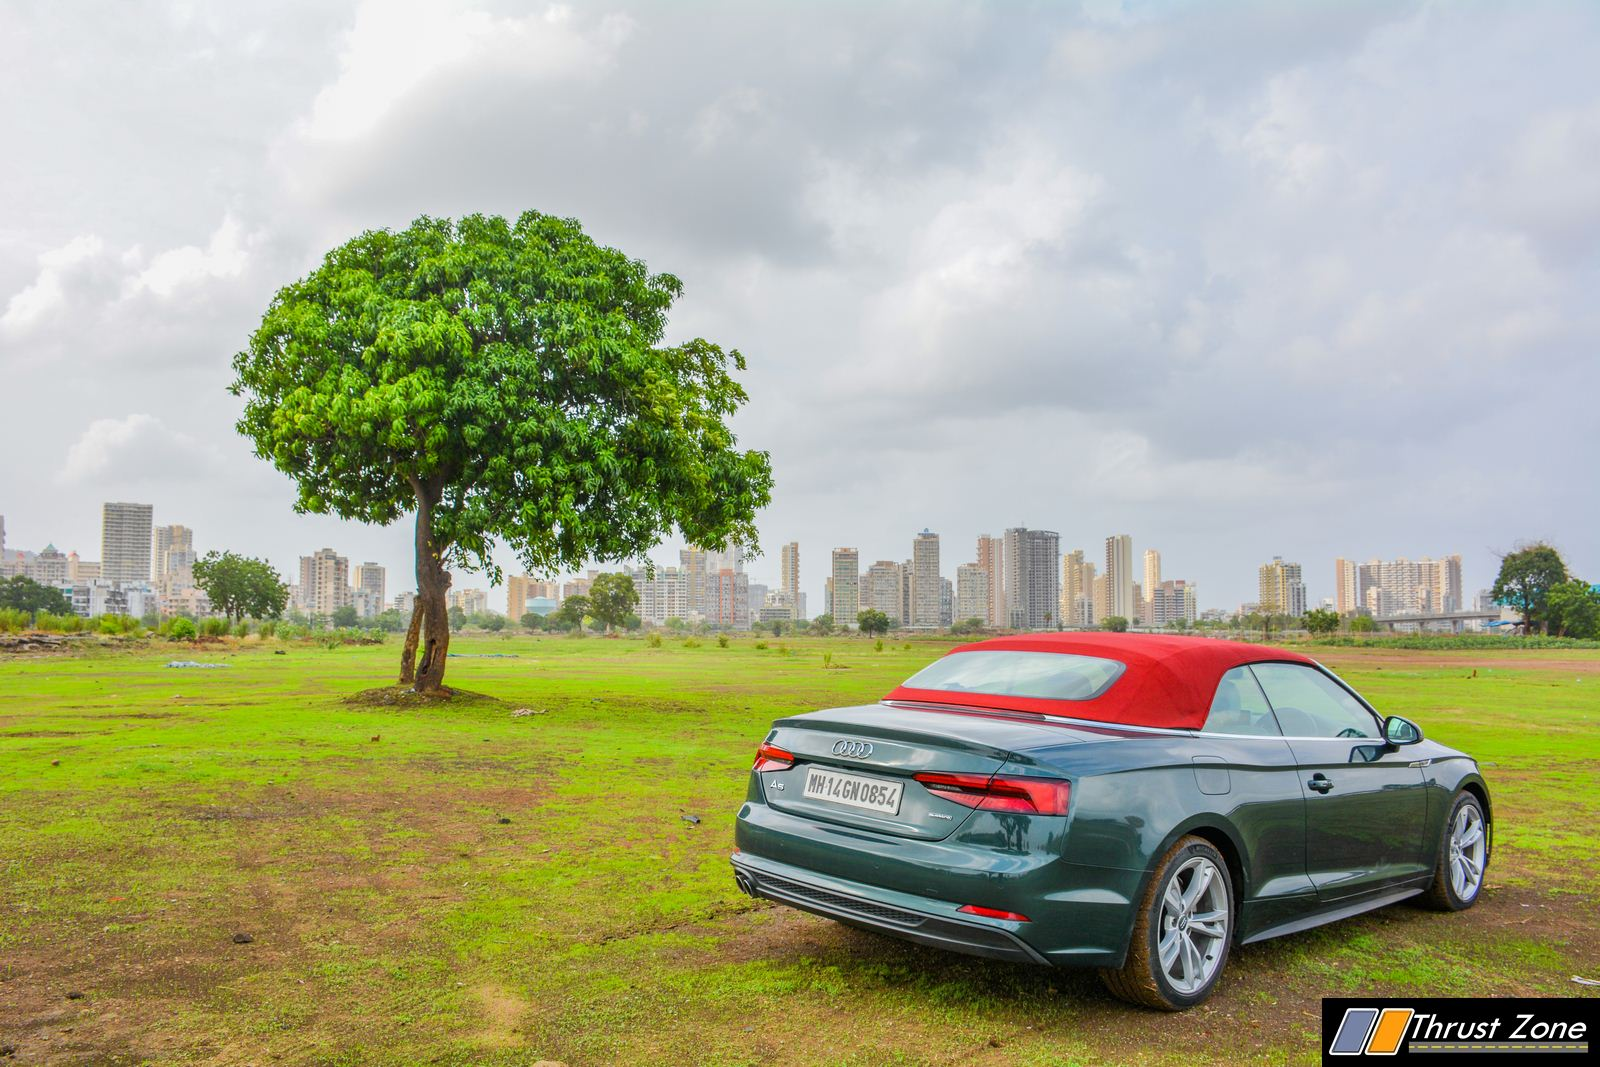 https://www.thrustzone.com/wp-content/uploads/2019/06/2019-Audi-A5-Cabriolet-Convertible-India-Diesel-Review-11.jpg